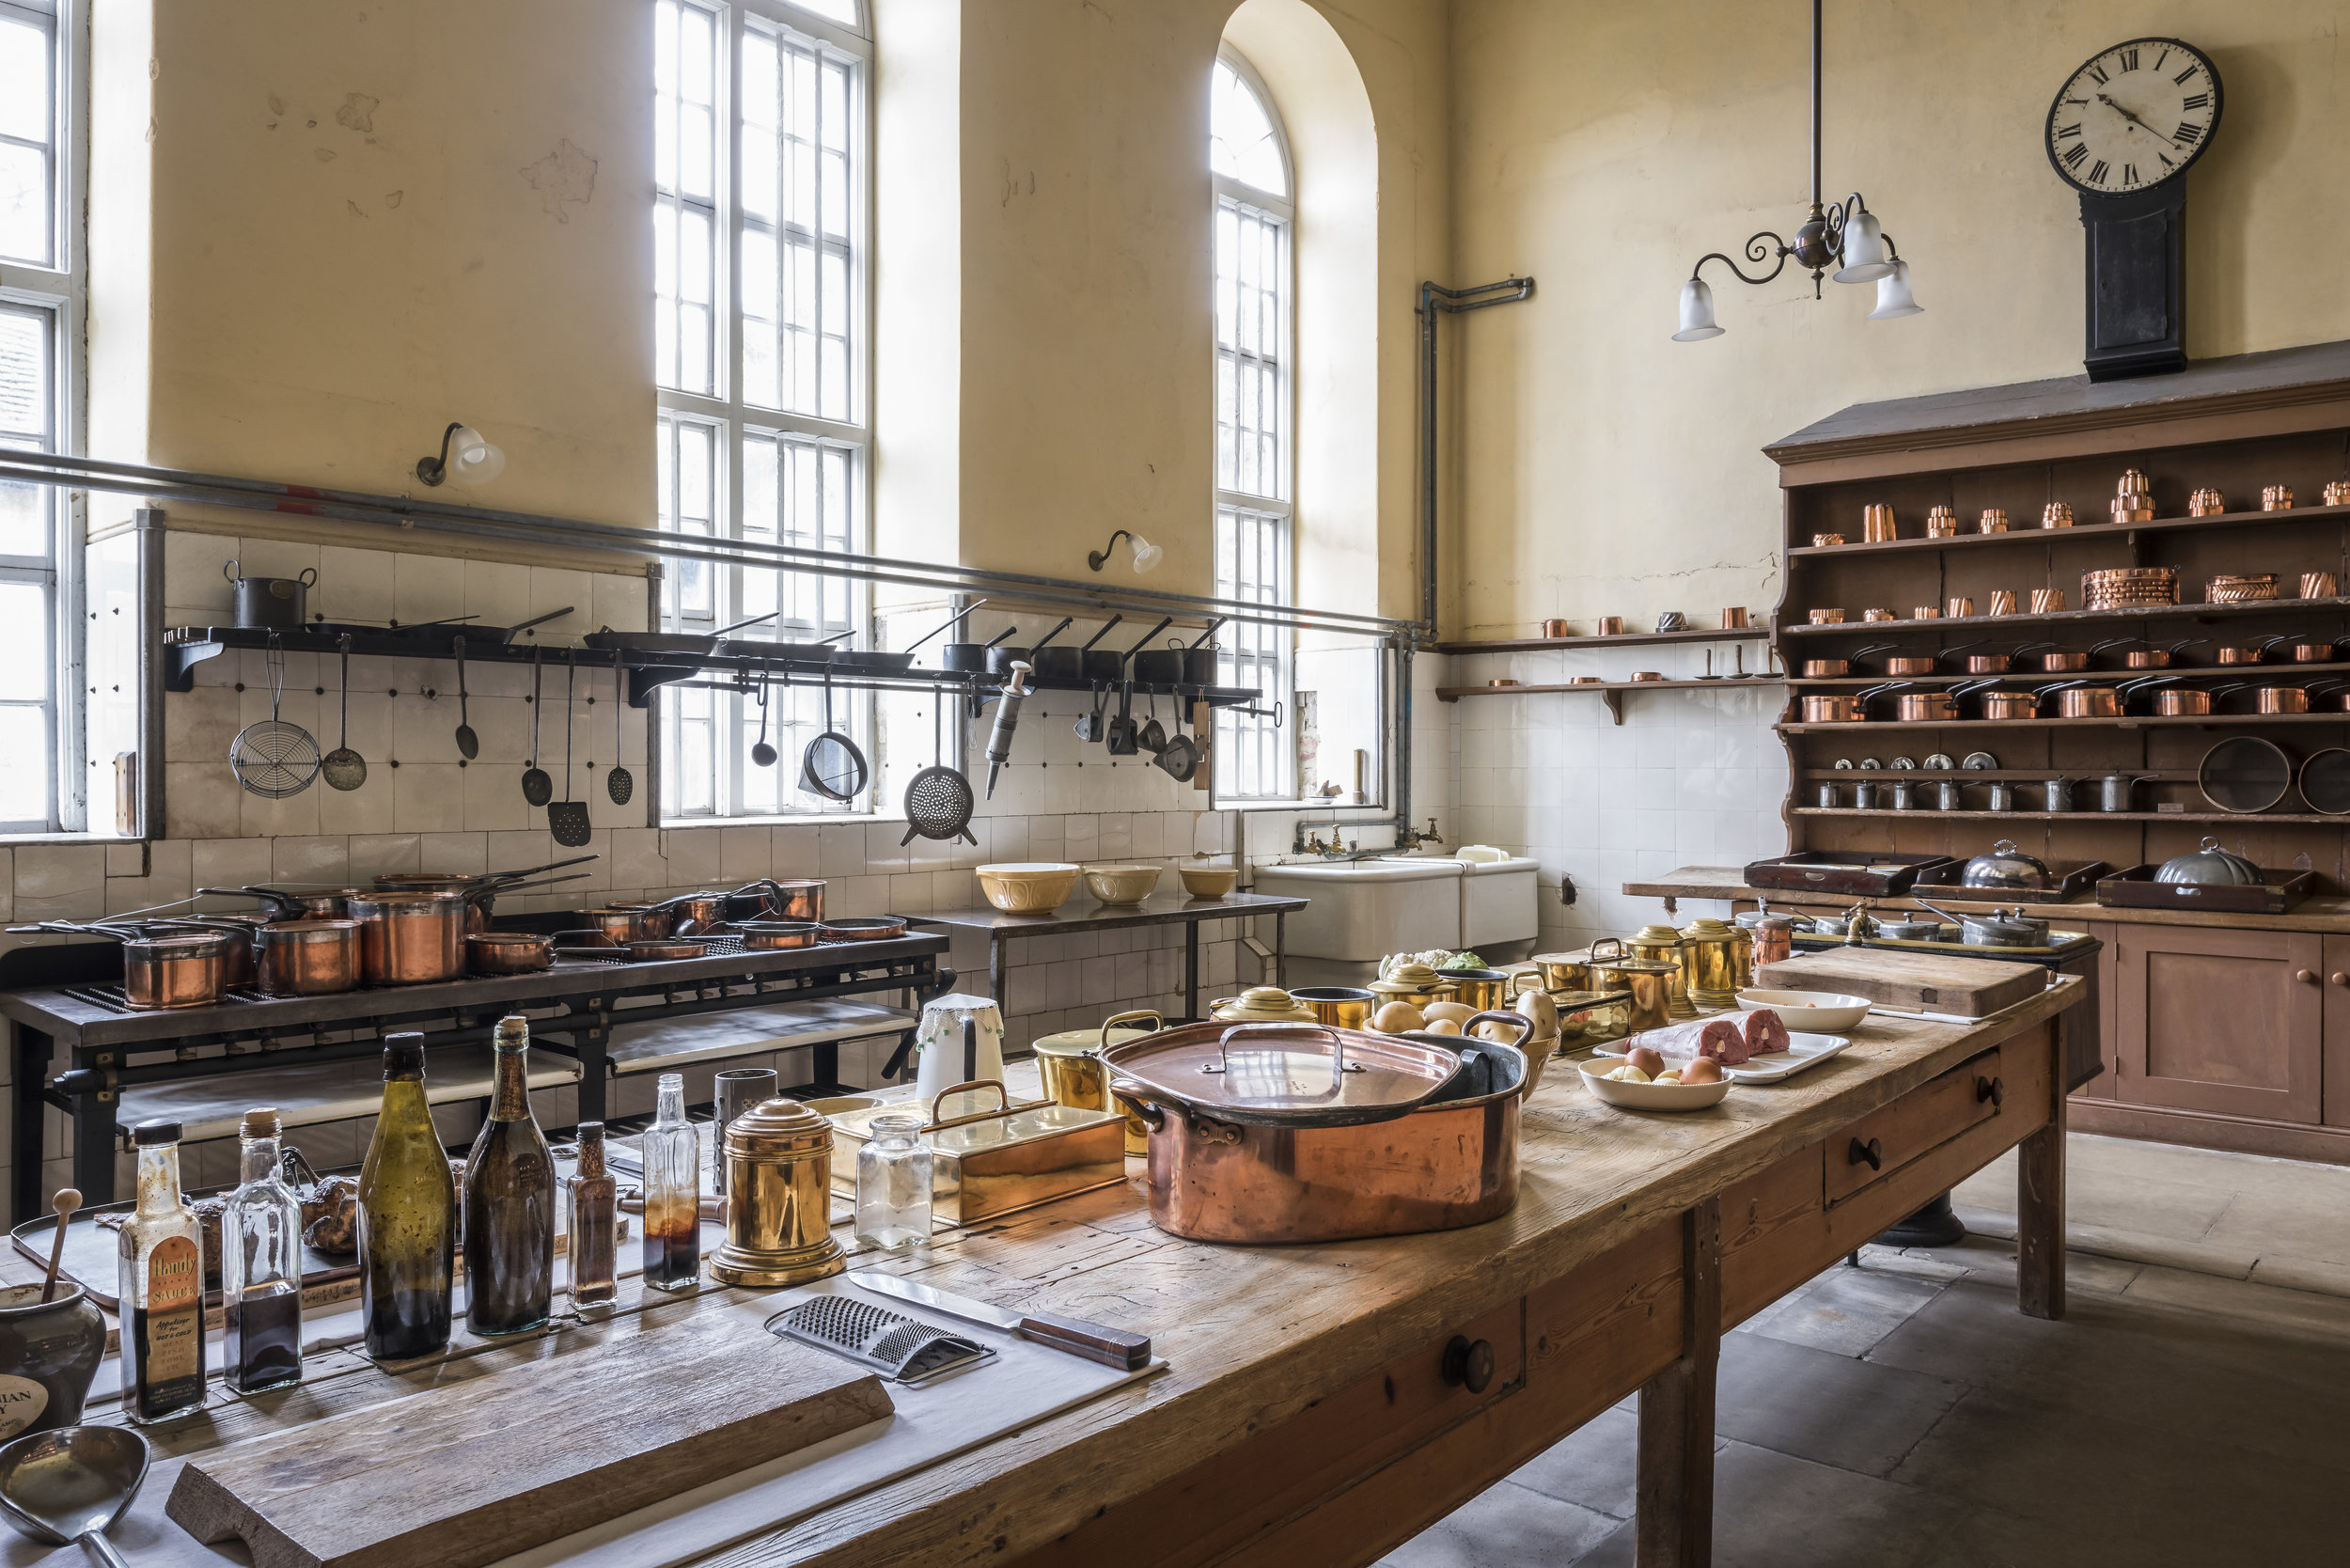 The Kitchen at Petworth House and Park, West Sussex ©National Trust Images, Andreas von Einsiedel